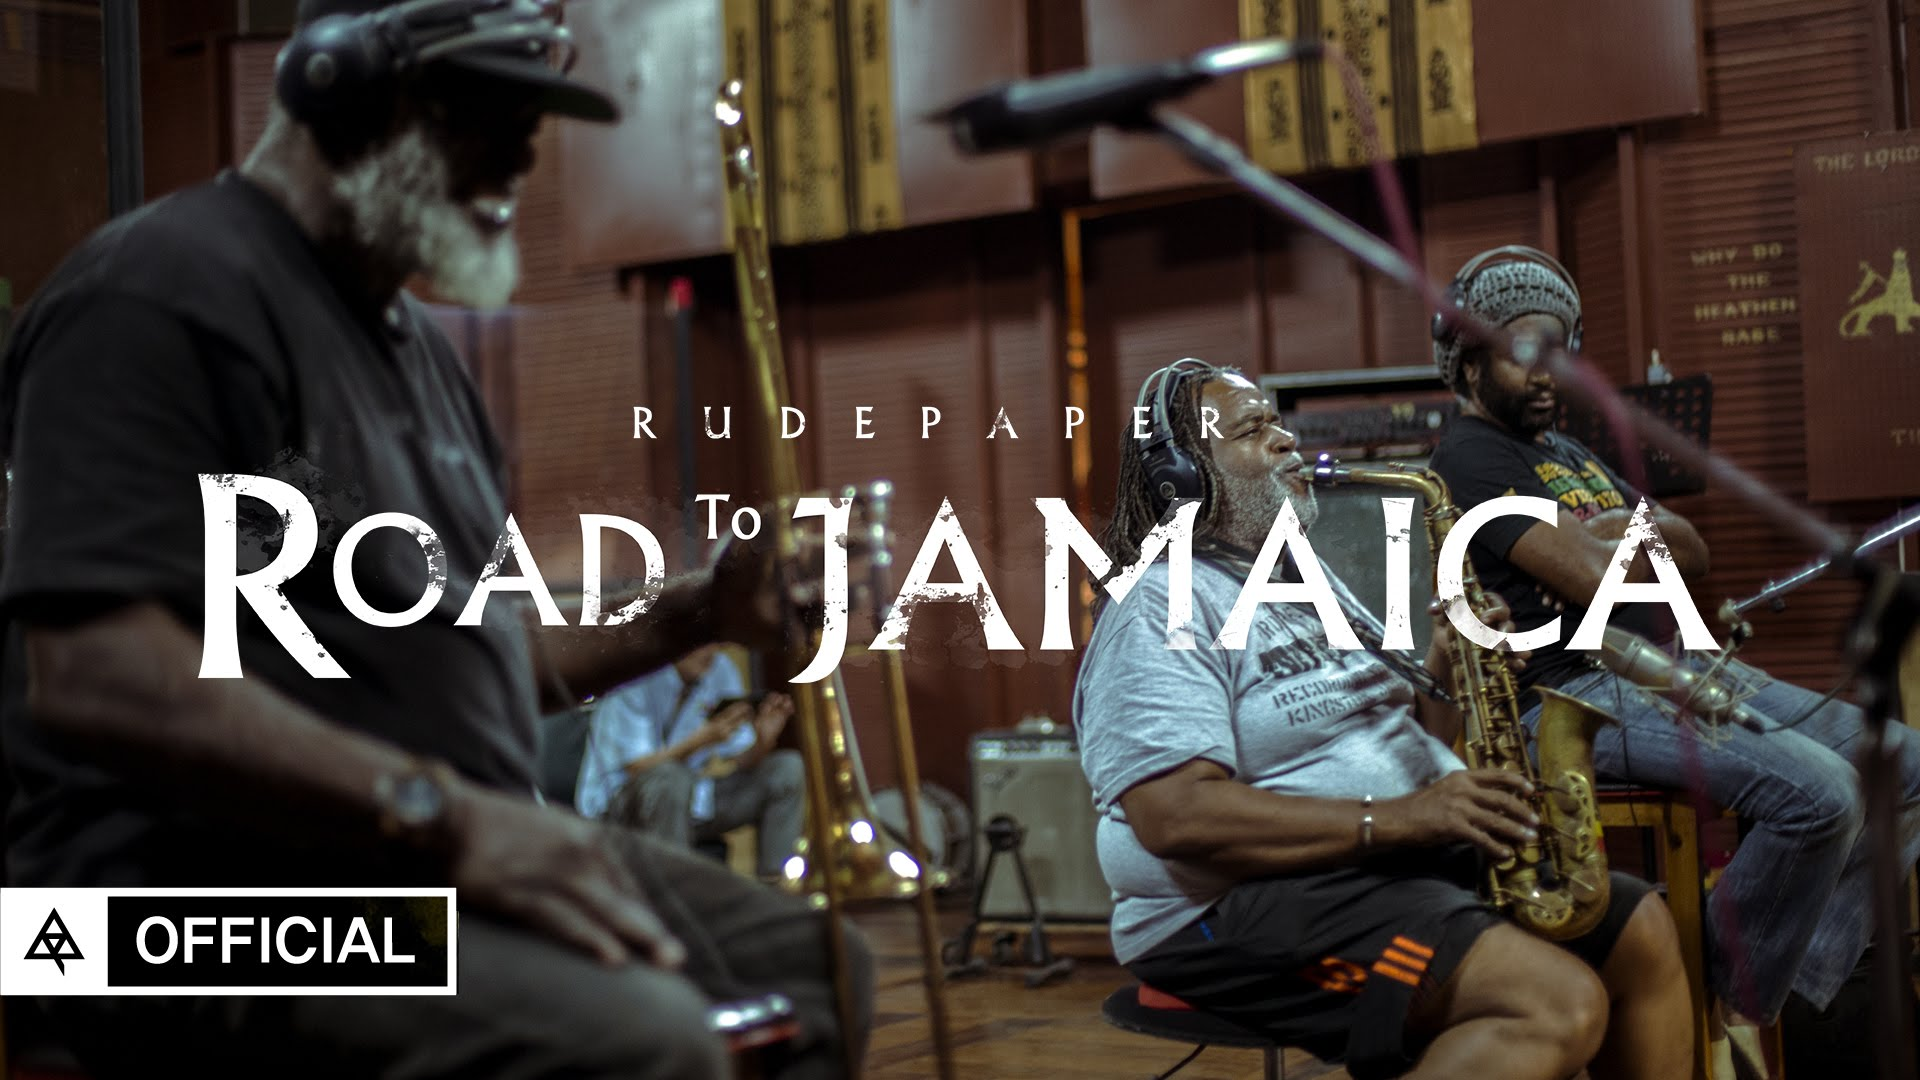 Korean band Rude Paper @ Tuff Gong Studio with Dean Fraser & Earl Chinna Smith [2/15/2016]